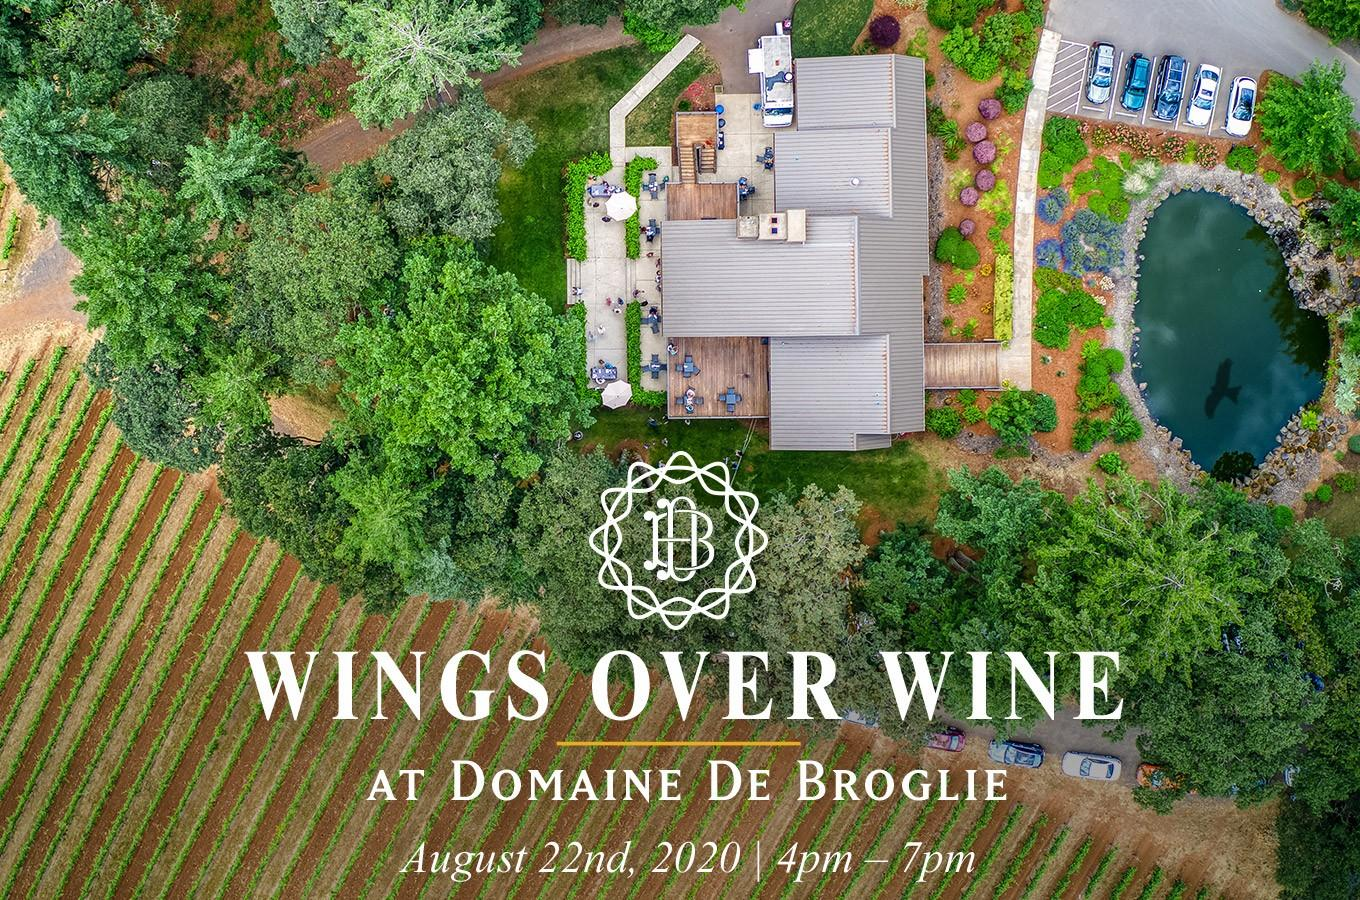 wings over wine email image I8muXb.tmp  - Wings Over Wine Picnic